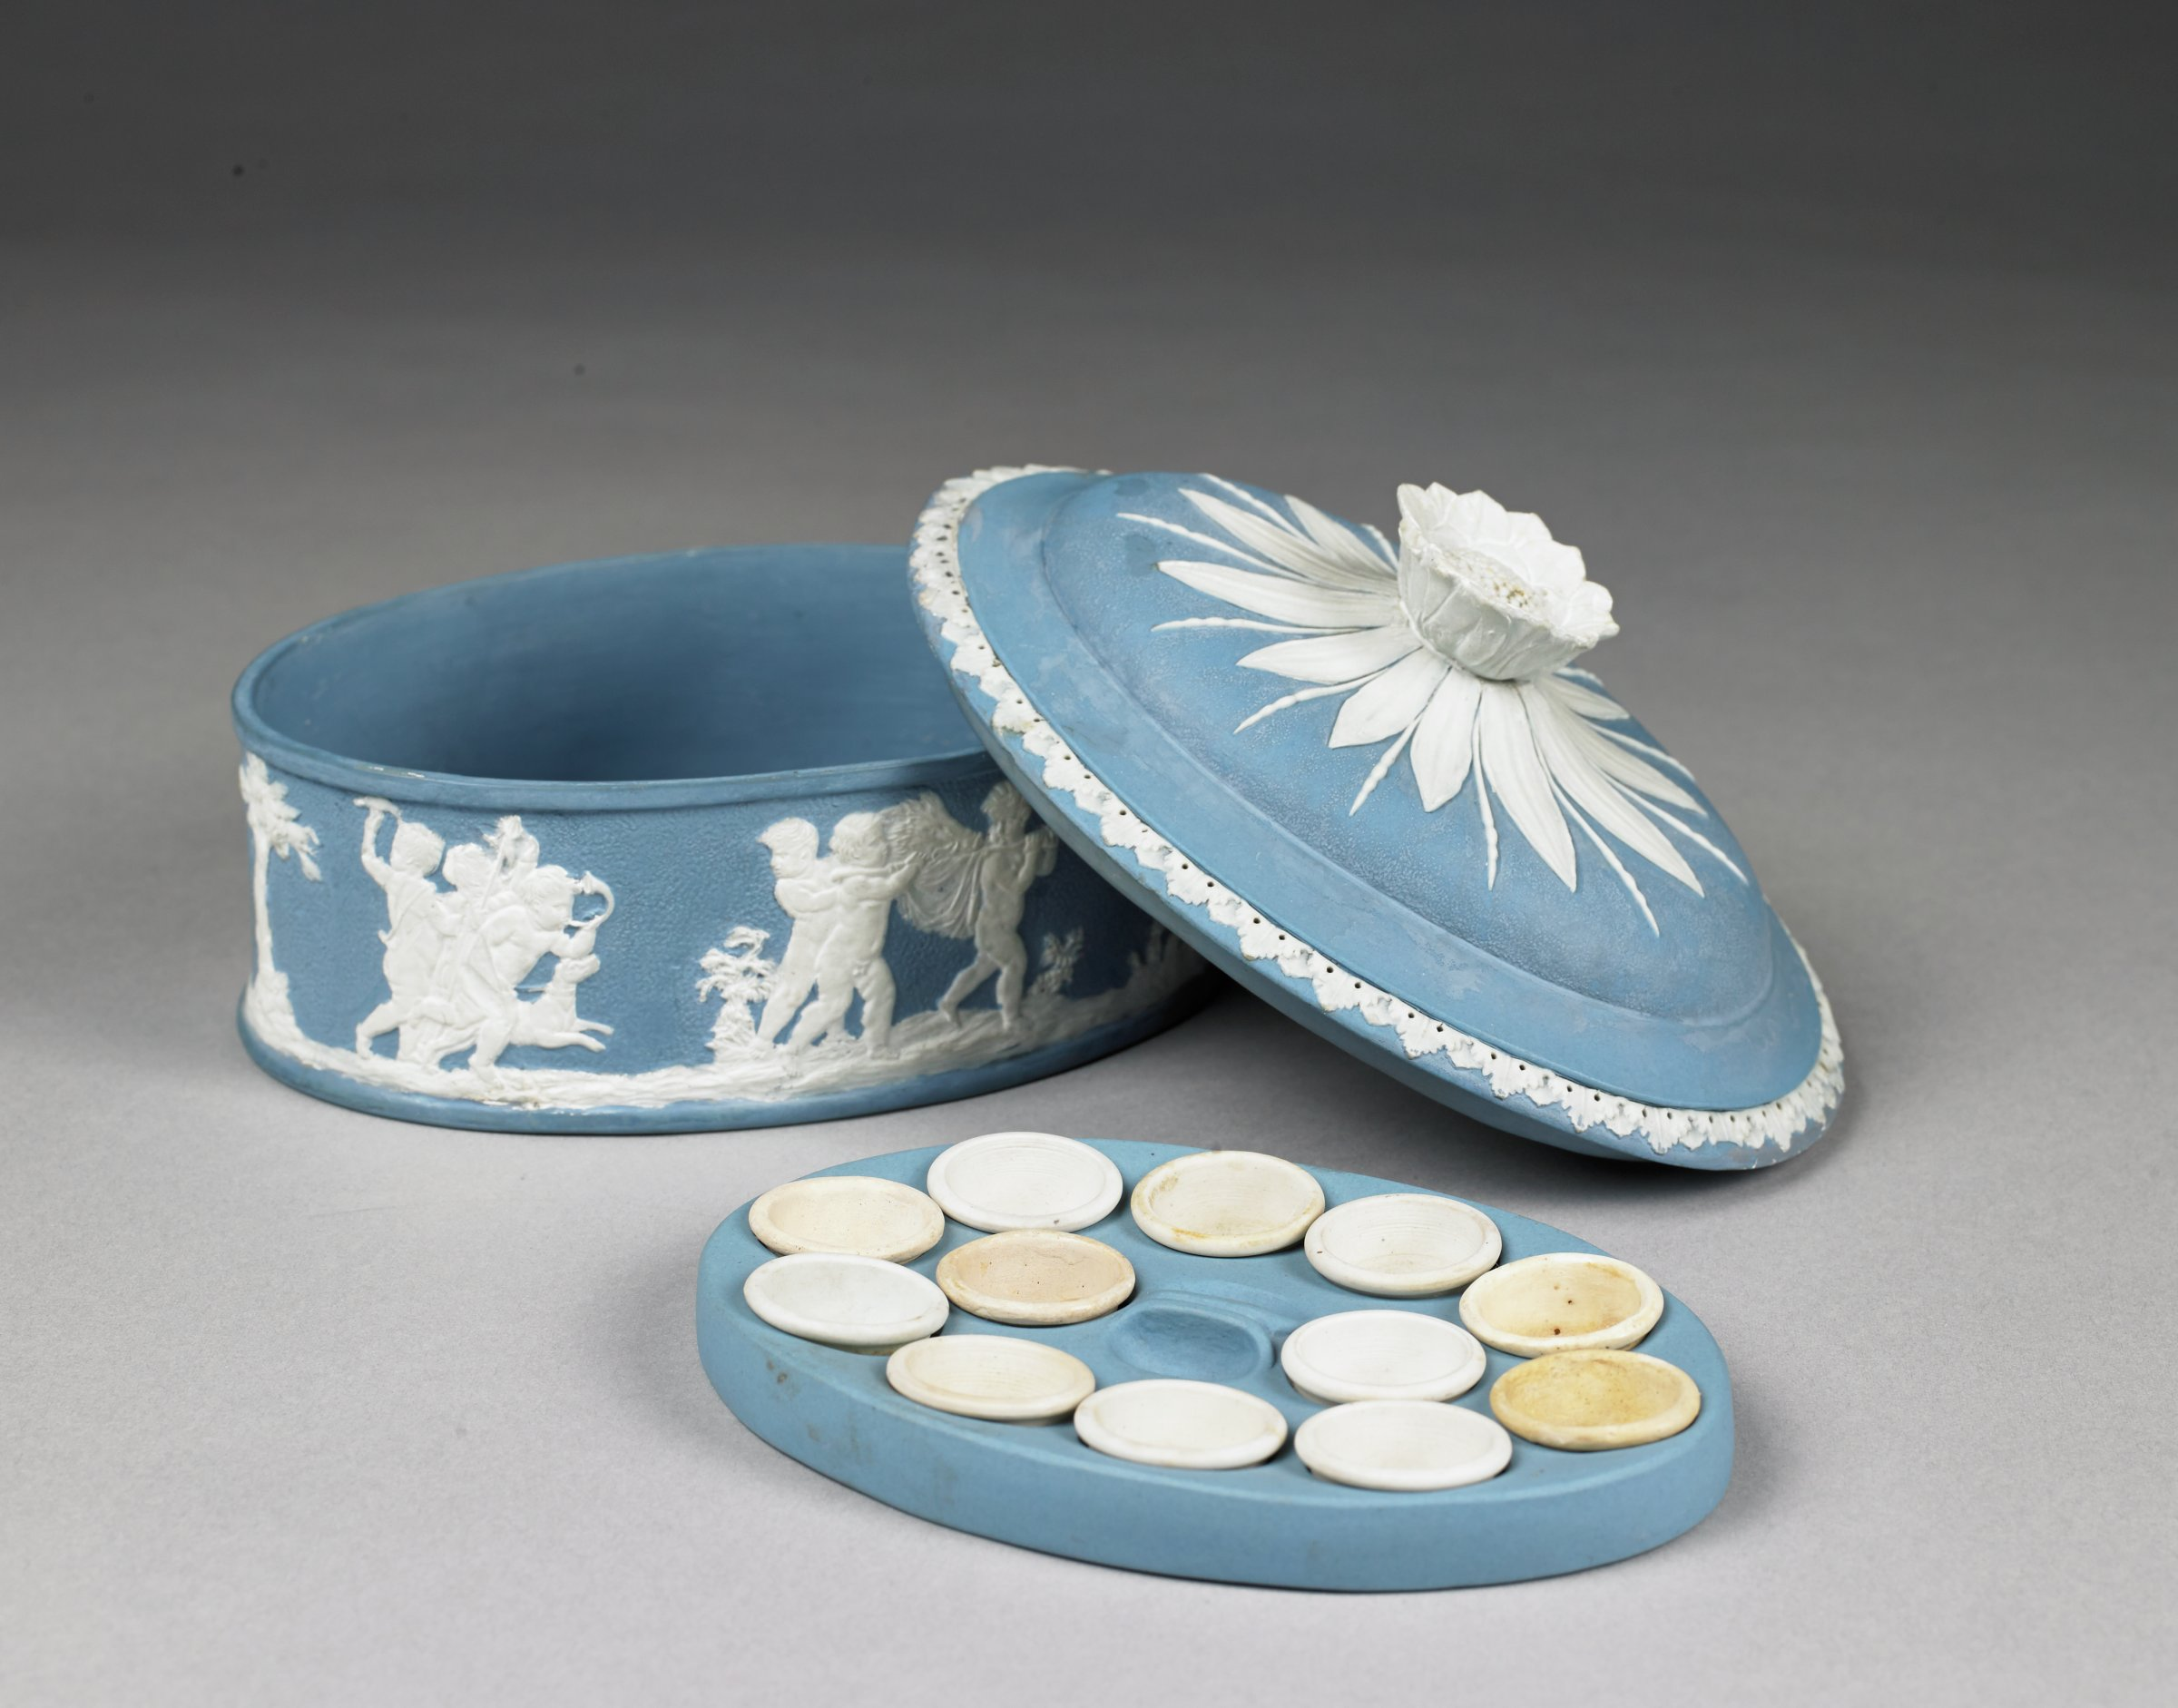 """Ladies' covered paint box of light blue and white jasperware, oval in shape, the main body with stippled ground and decorated in relief with scenes from """"Setting Out on the Hunt,"""" """"Bringing Home the Game,"""" and """"The Arts,"""" with groups of putti with dogs and hunting accoutrements, carrying game, and playing instruments, the slightly domed cover with acanthus border and sunflower finial with applied leaves against stippled ground; the interior outfitted with a blue jasper holder with twelve holes to hold paint cups and fourteen small white jasper paint cups."""